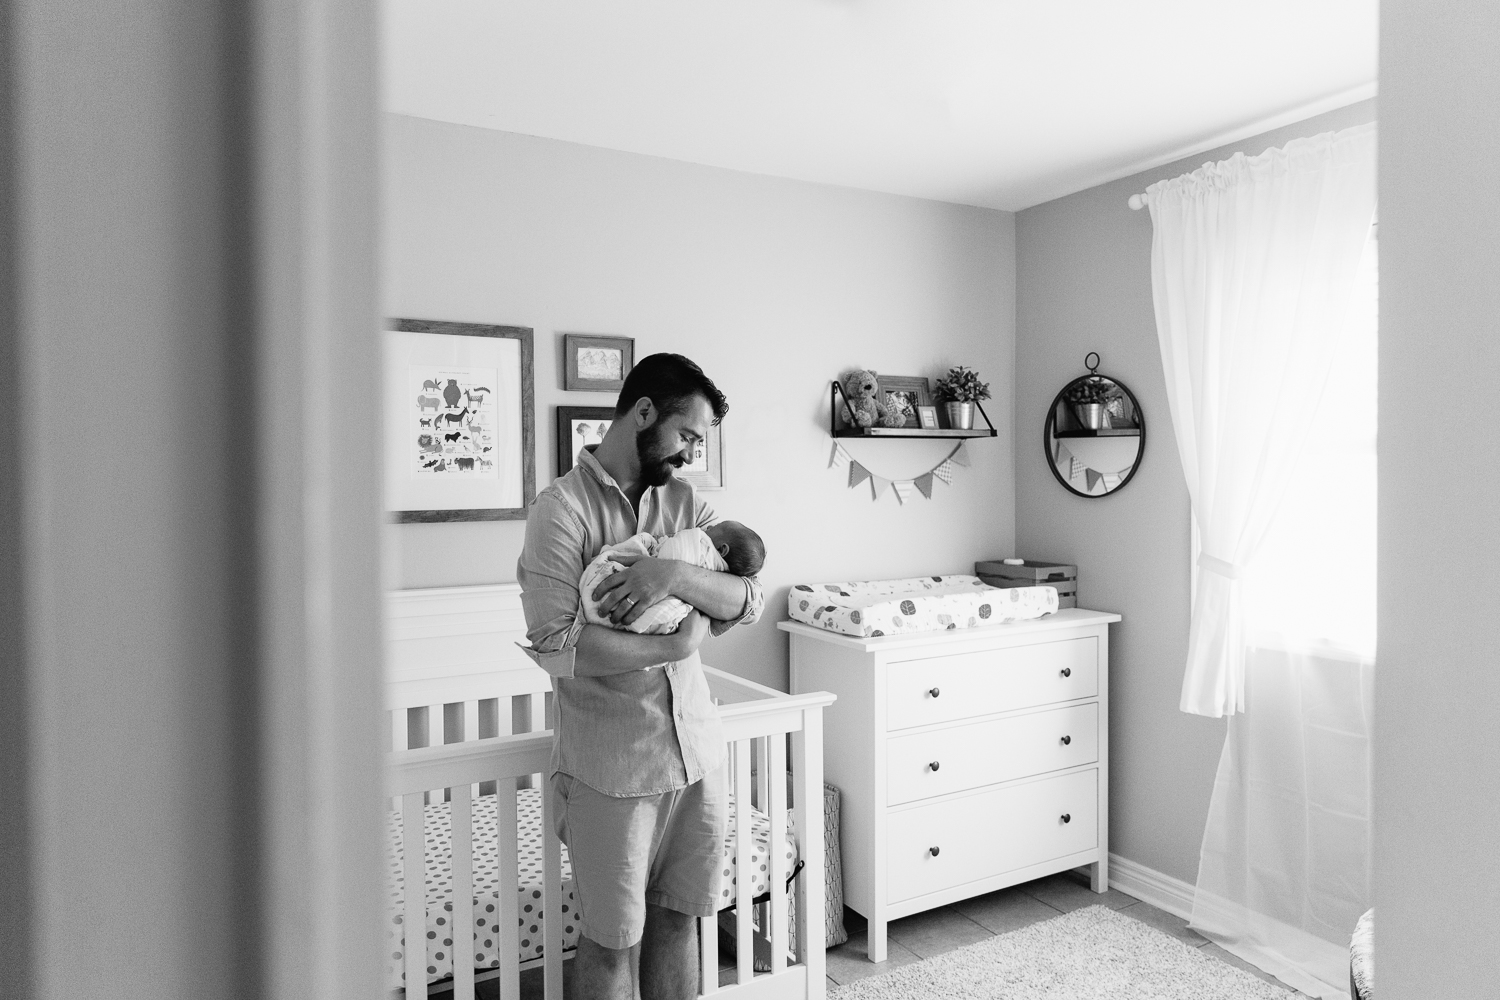 new father with brown hair and beard standing in nursery in front of crib holding 3 week old swaddled baby boy with red hair in his arms and looking at son - GTA In-Home Photos